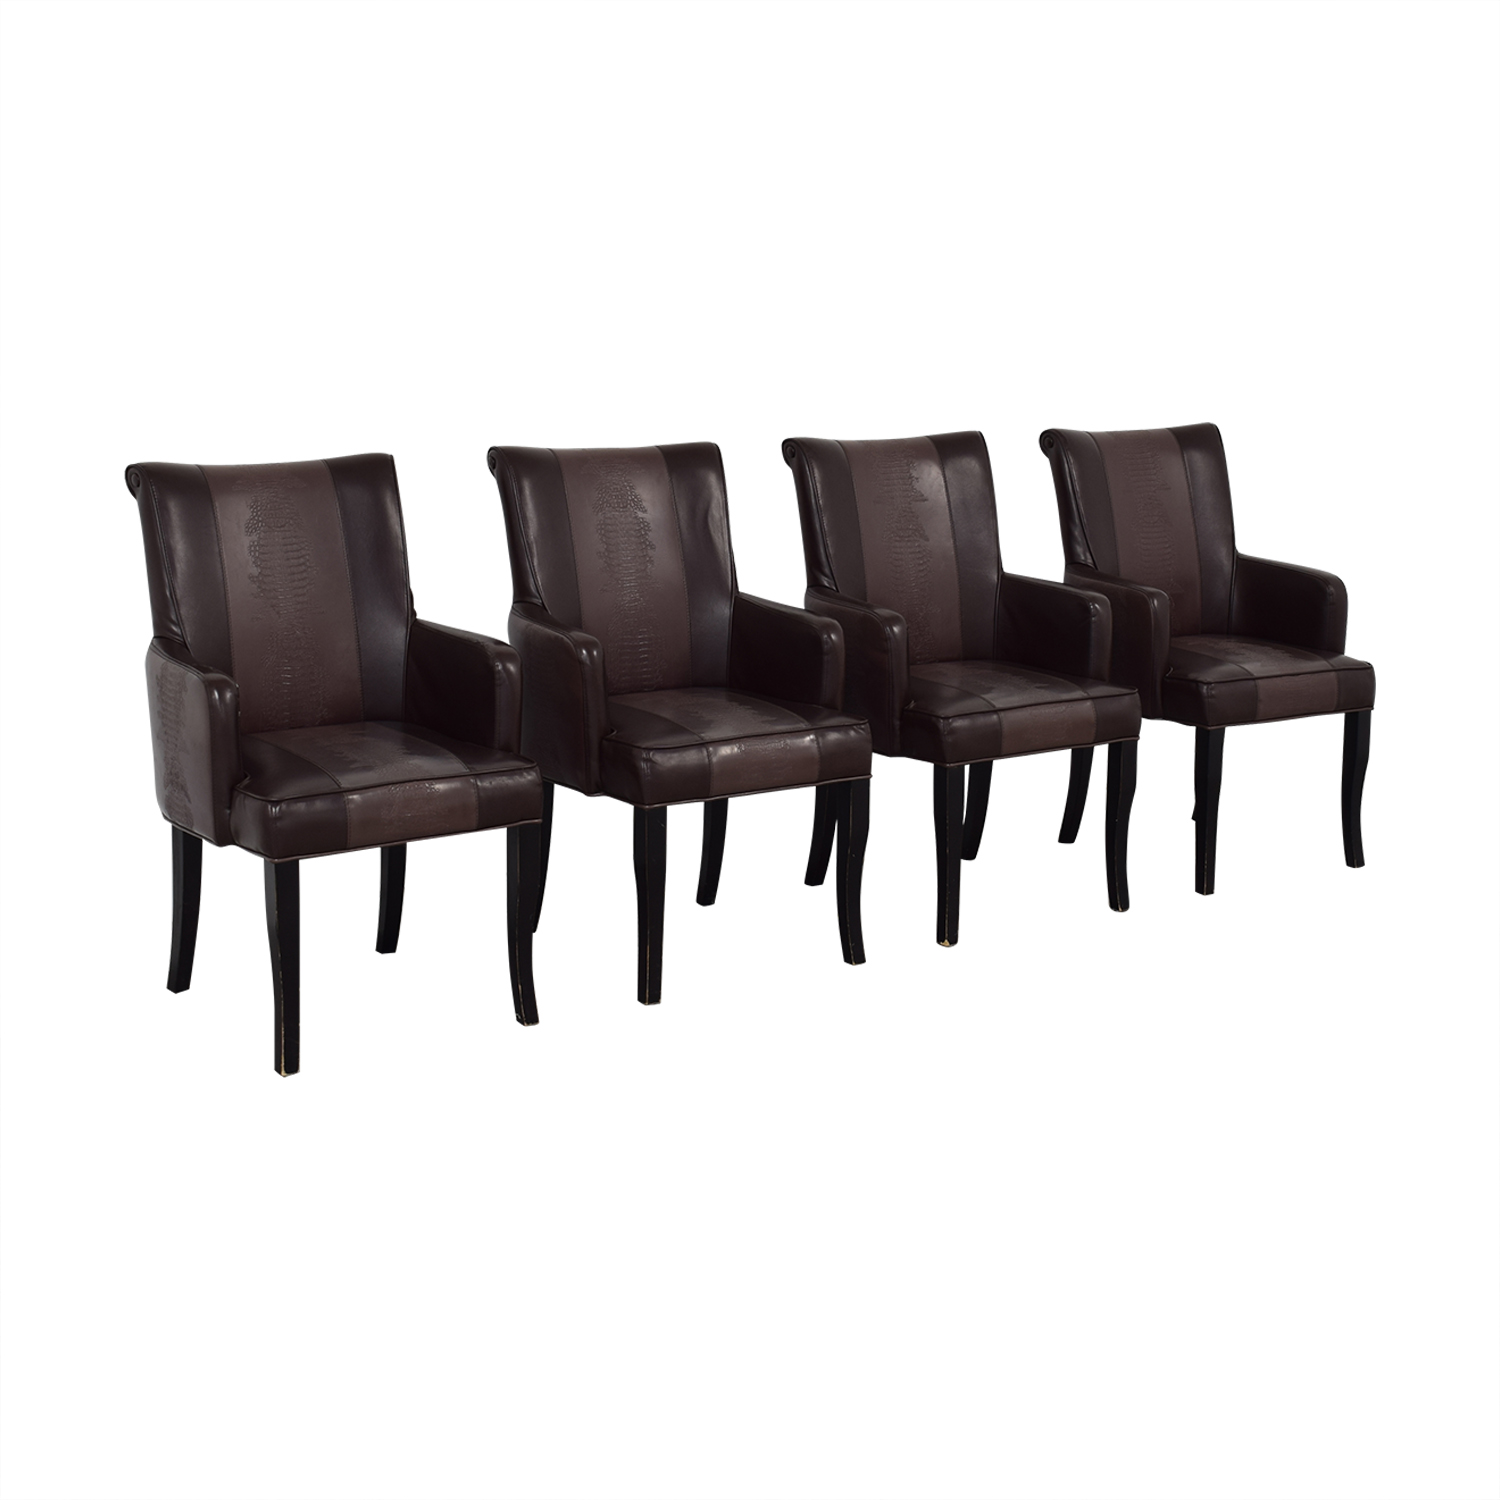 Bloomingdale's Bloomingdale's Brown Leather Dining Chairs Dining Chairs